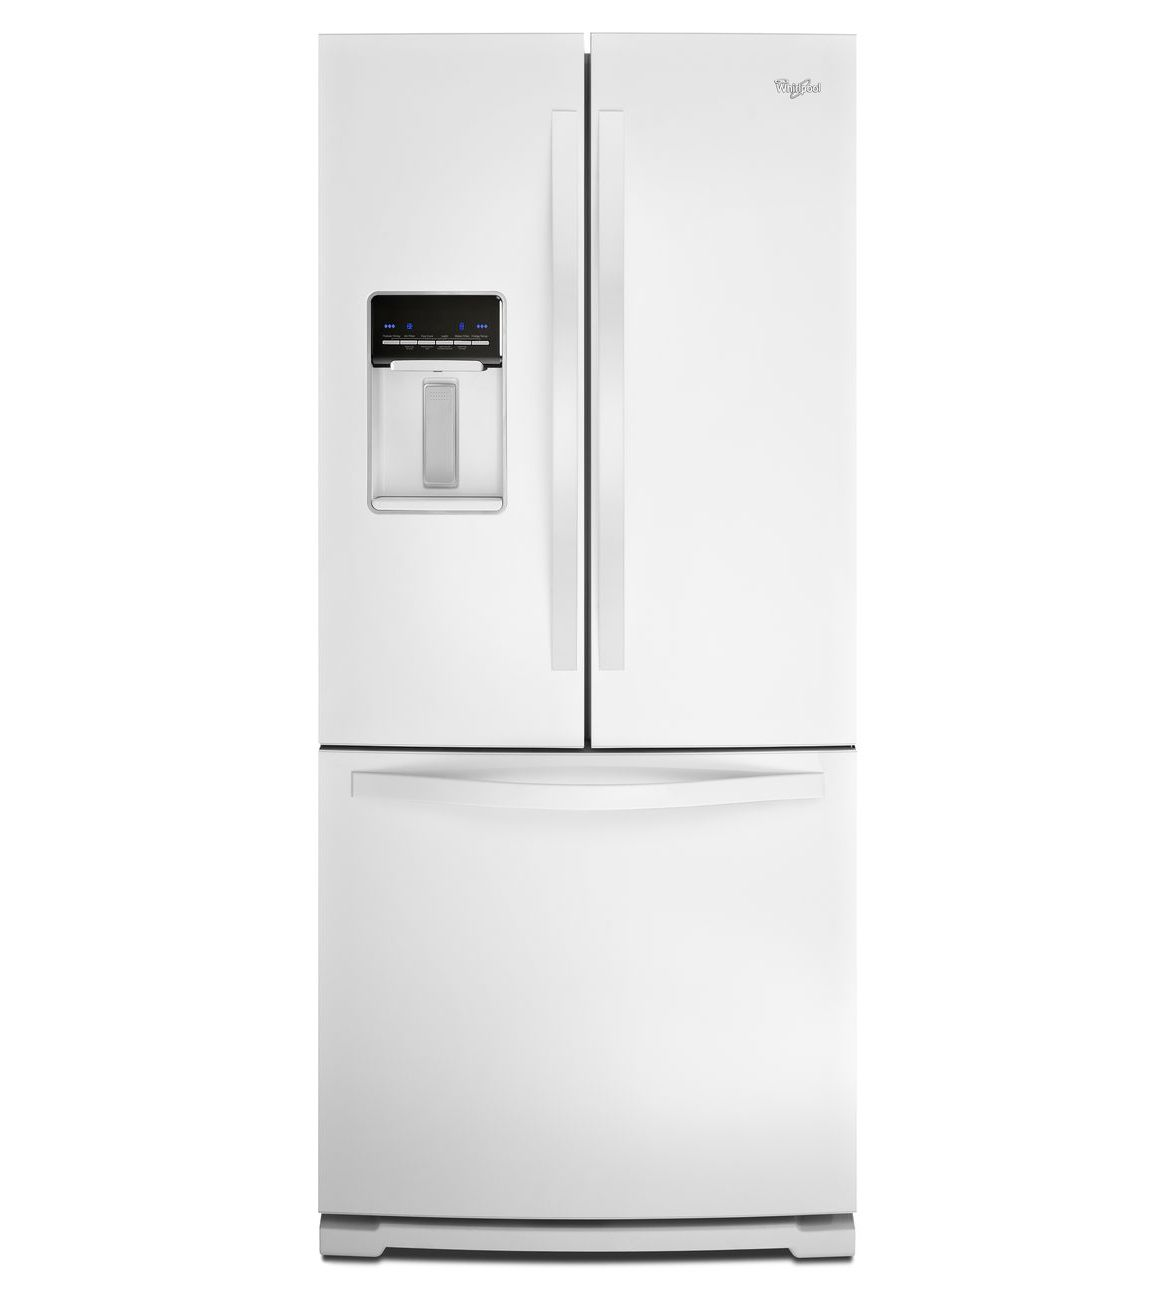 30 inch wide french door refrigerator with exterior water wrf560seym b rubansaba